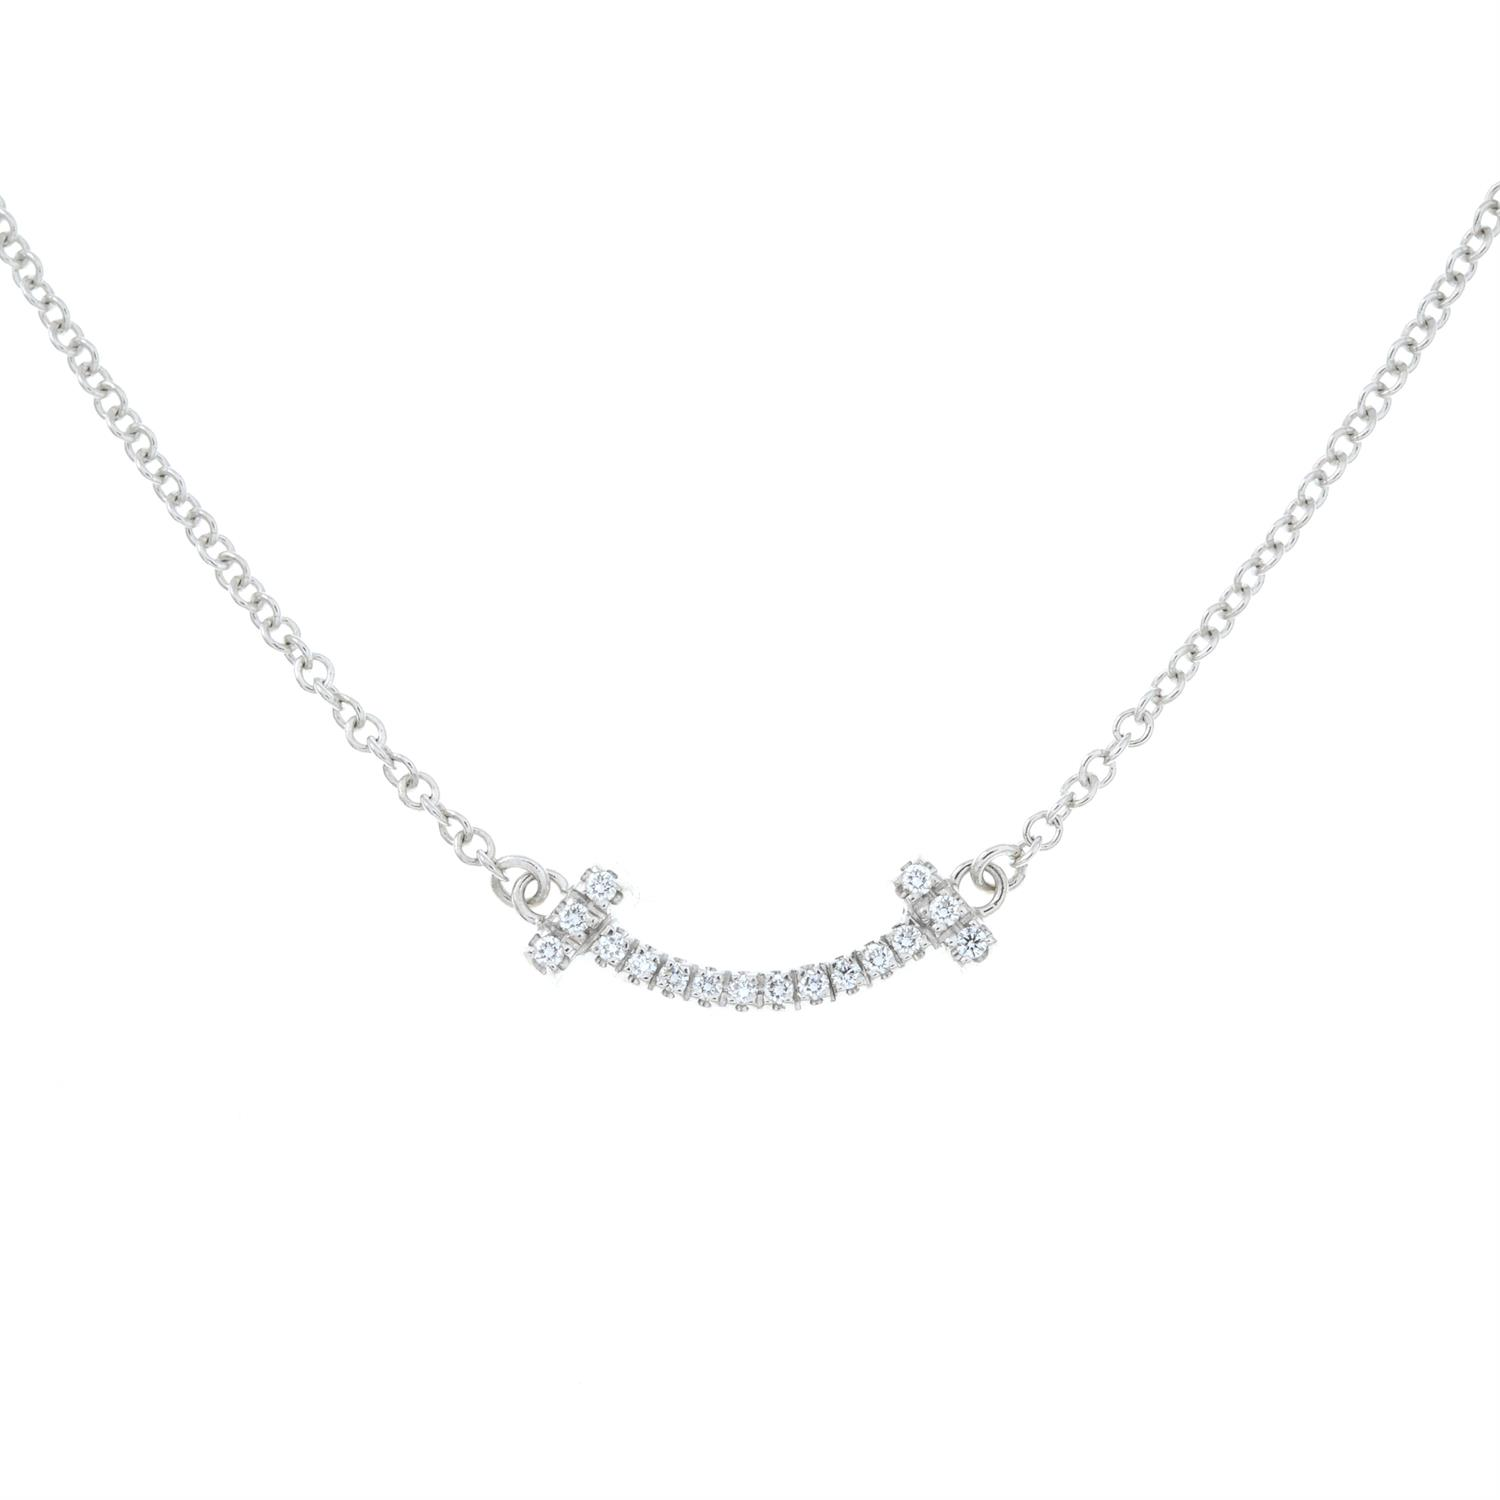 A diamond 'T Smile' pendant necklace, by Tiffany & Co. - Image 2 of 5